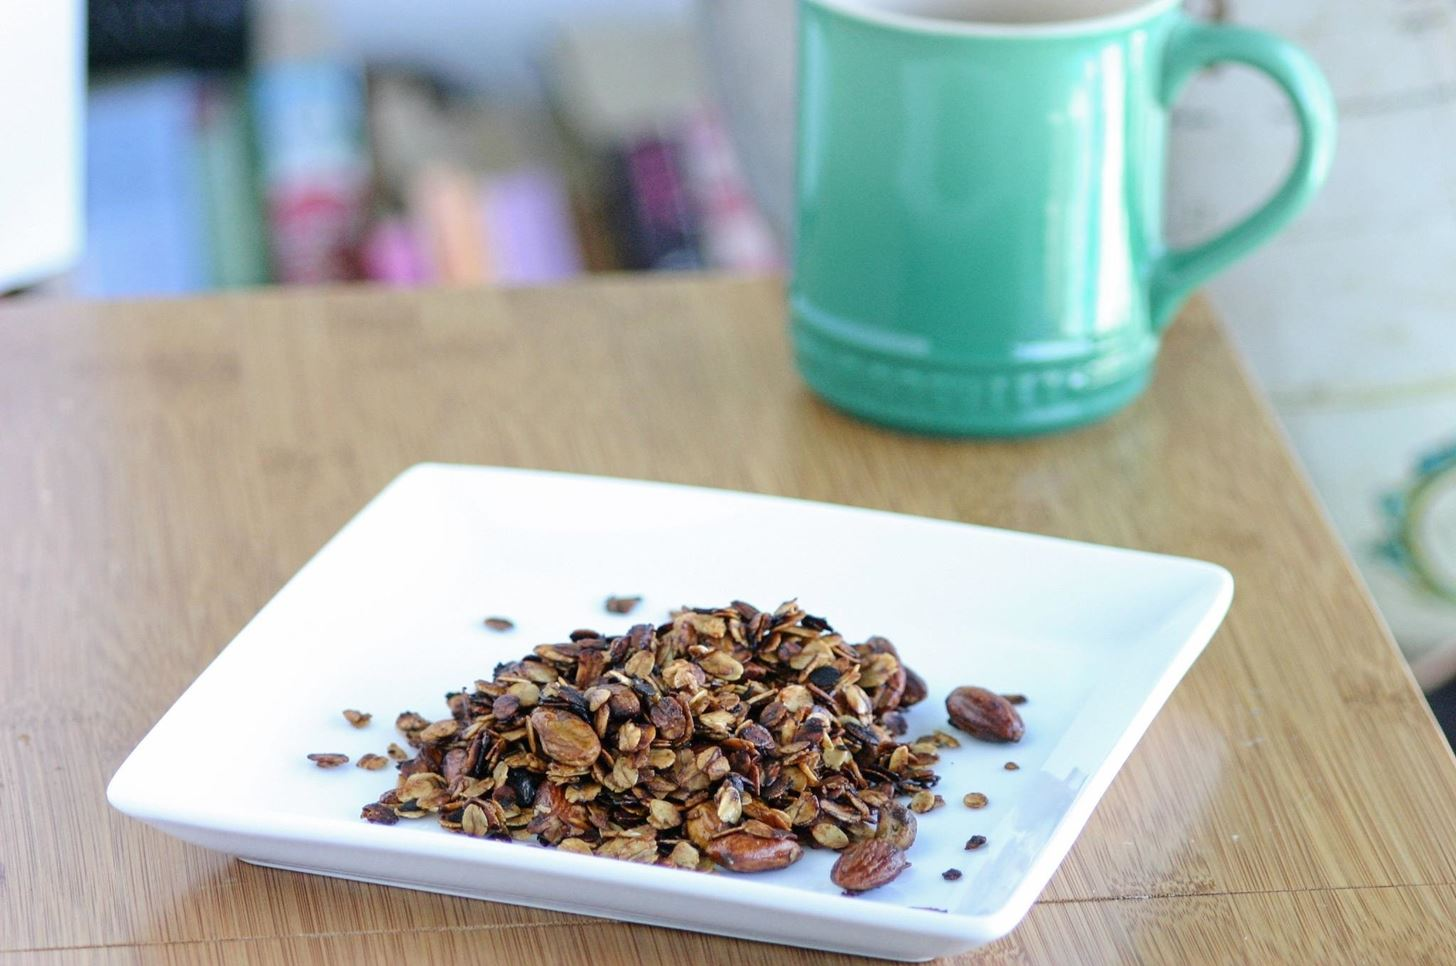 Ditch the Oven & Make Crunchy Stovetop Granola in Just 5 Minutes